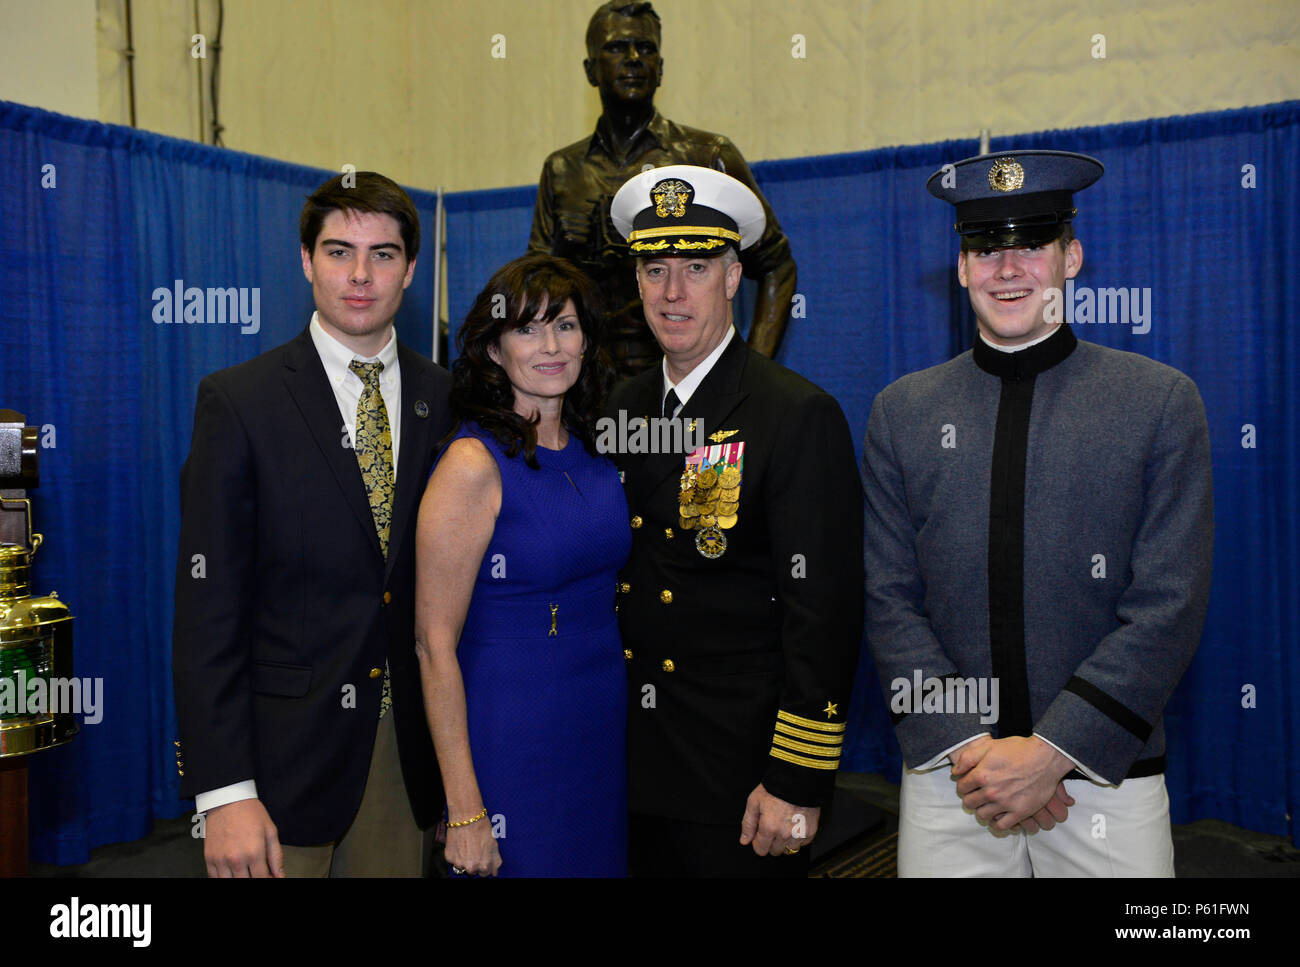 NEWPORT NEWS, Va., (April 8, 2016) -- Capt. John F. Meier poses with his family following a change of command in Pre-Commissioning Unit Gerald R. Ford's (CVN 78) hangar bay.  Ford is the first of a new class of aircraft carriers currently under construction by Huntington Ingalls Newport News Shipbuilding. (U.S. Navy photo by Mass Communication Specialist Seaman Apprentice Gitte Schirrmacher/Released) - Stock Image